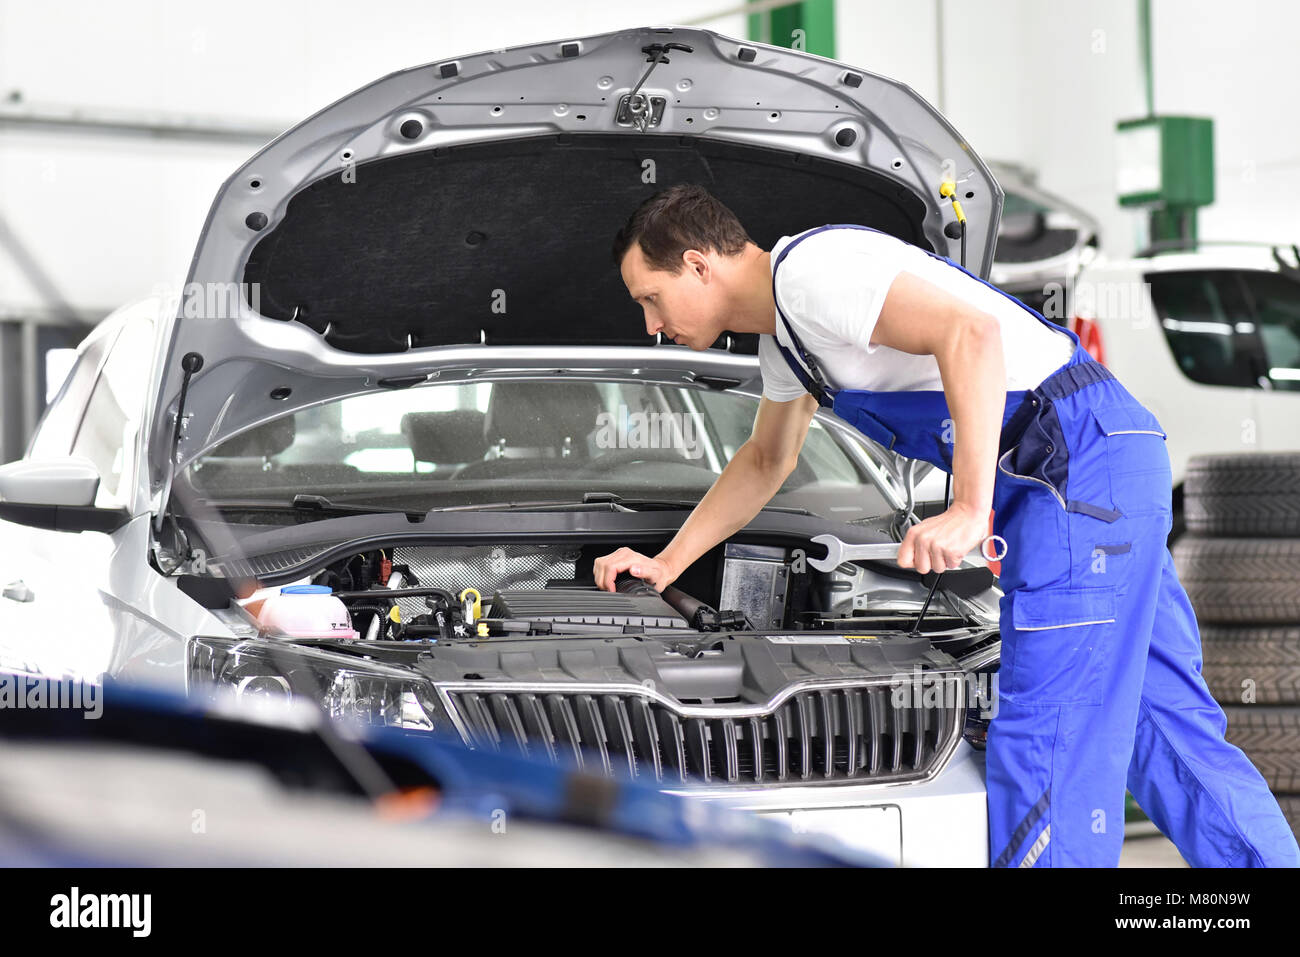 car mechanic in a workshop repairing a vehicle - Stock Image